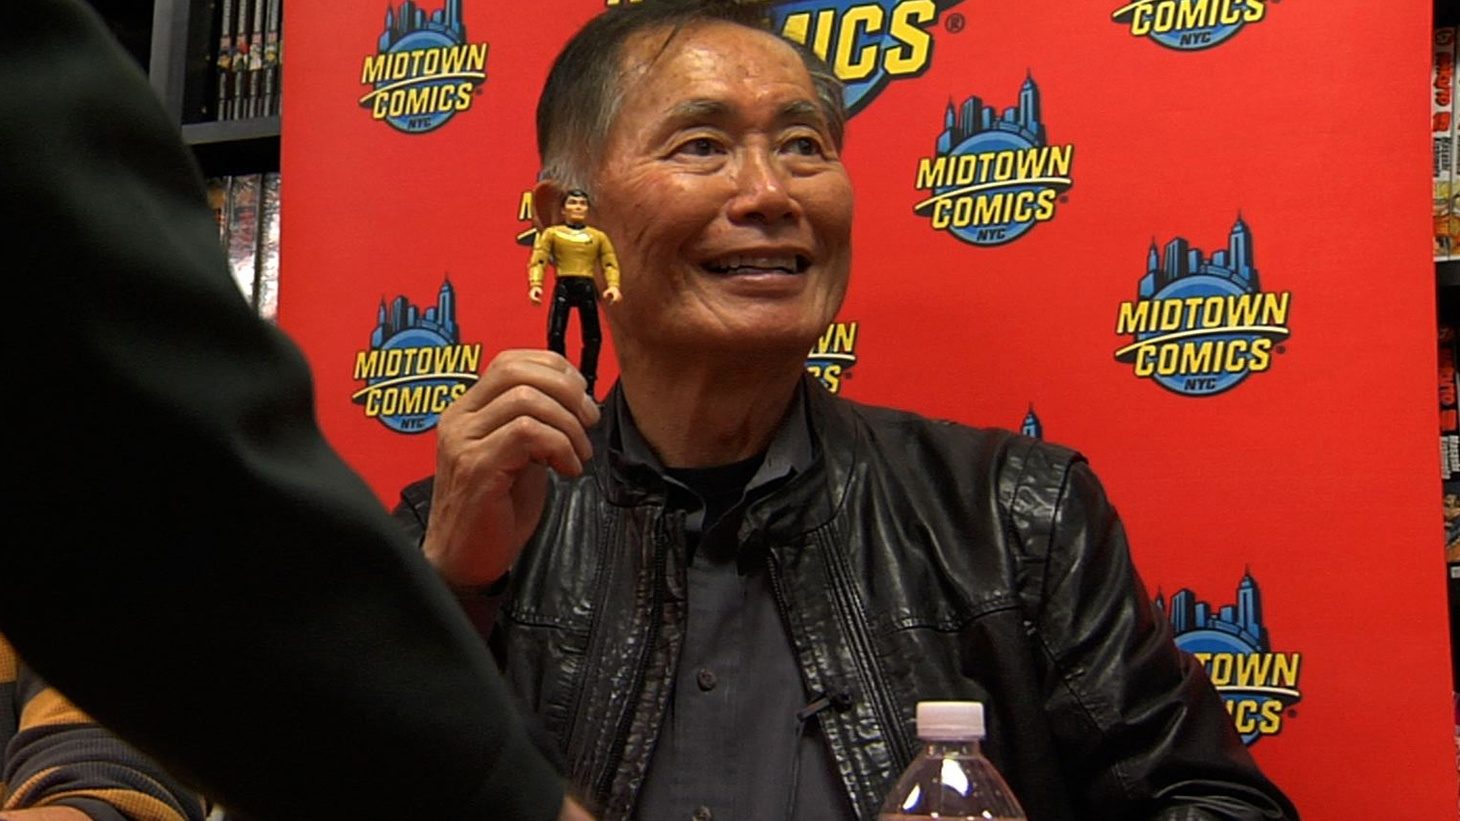 Best known for his role at Lieutenant Sulu on Star Trek, George Takei is now the subject of the documentary, To Be Takei. The actor and activist talks about the chaos behind the first Star Trek movie and why William Shatner is like the crazy uncle of the Star Trek family.